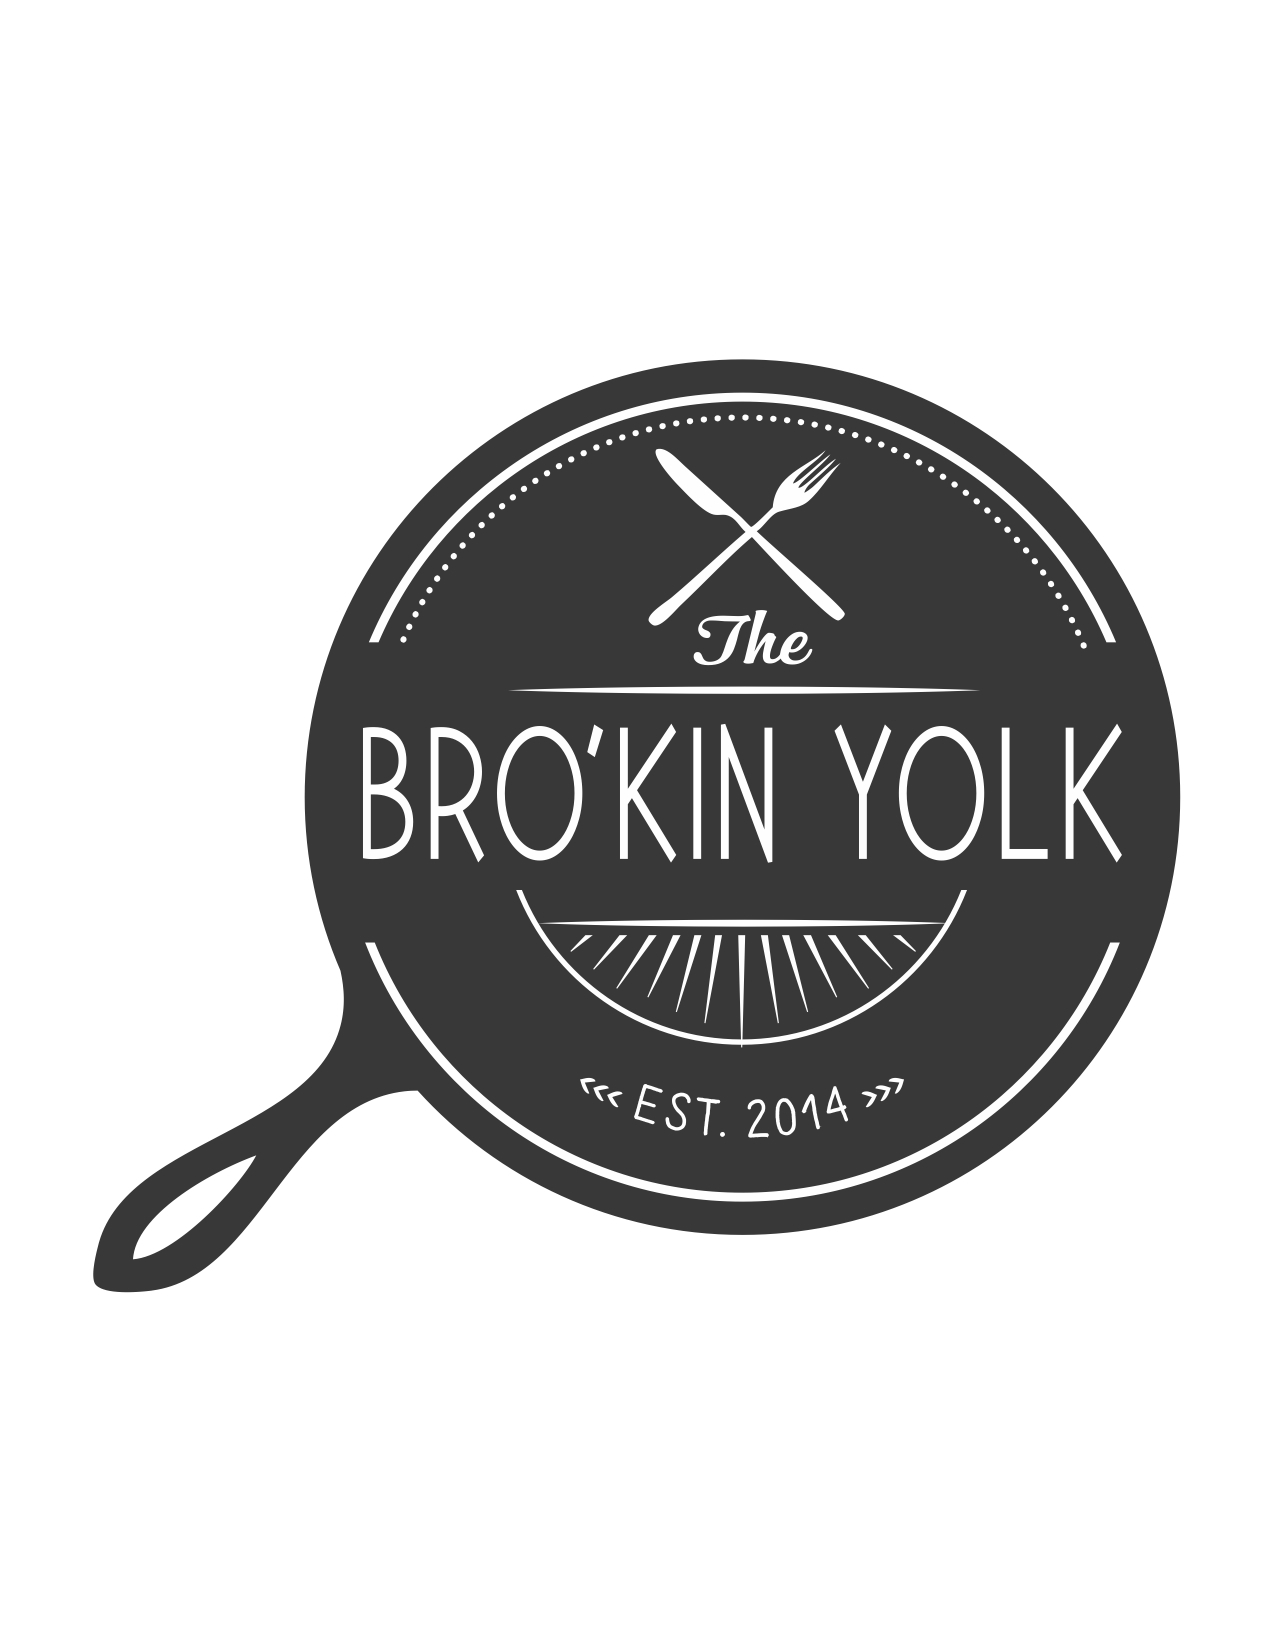 The Bro'kin Yolk